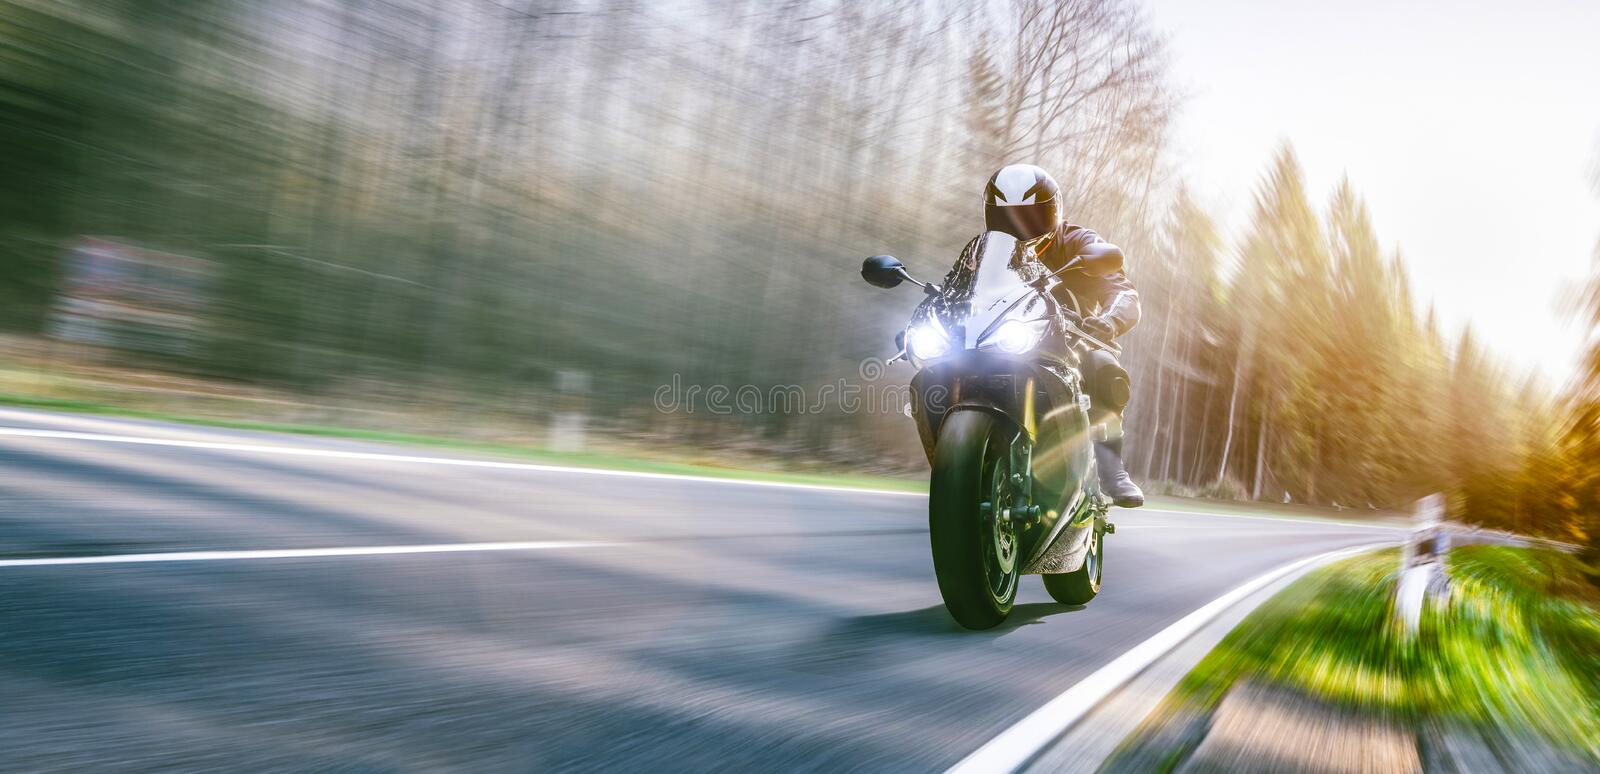 Motorbike on the road riding. having fun riding the empty road o stock photography